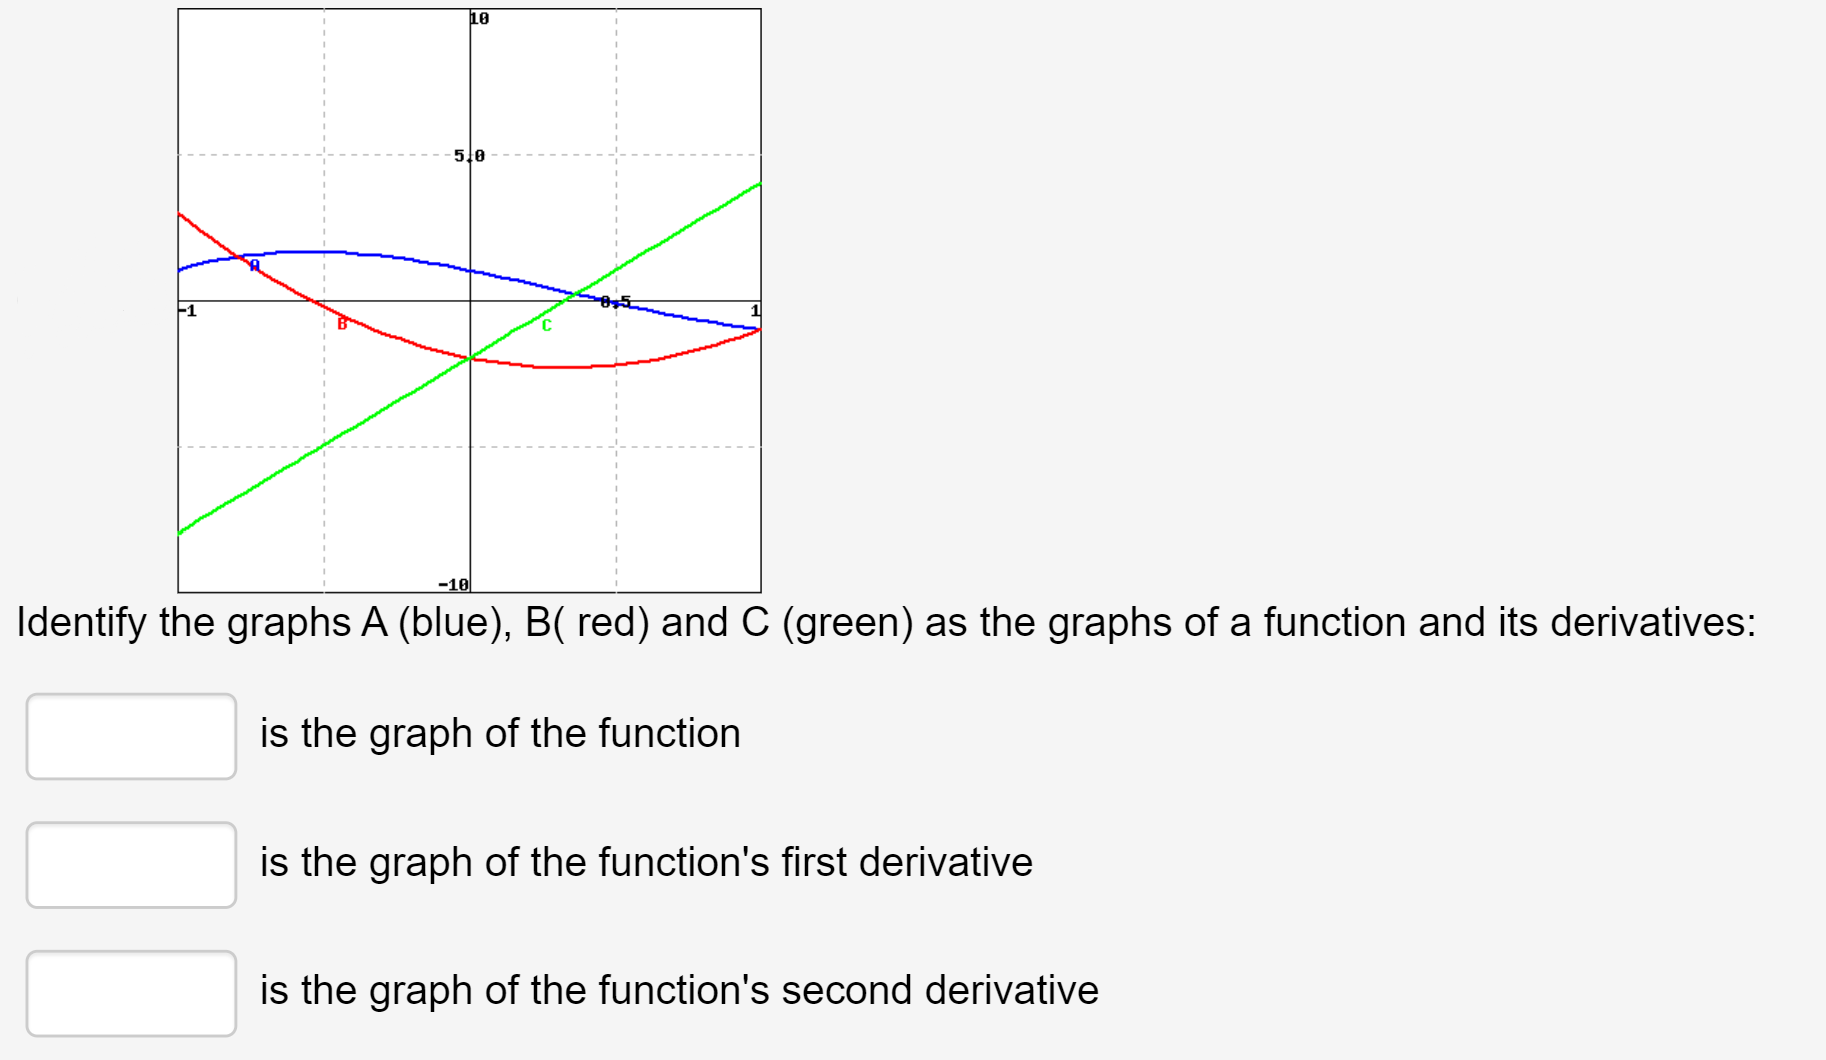 10 5 0 -1 -10 Identify the graphs A (blue), B( red) and C (green) as the graphs of a function and its derivatives: is the graph of the function is the graph of the function's first derivative is the graph of the function's second derivative